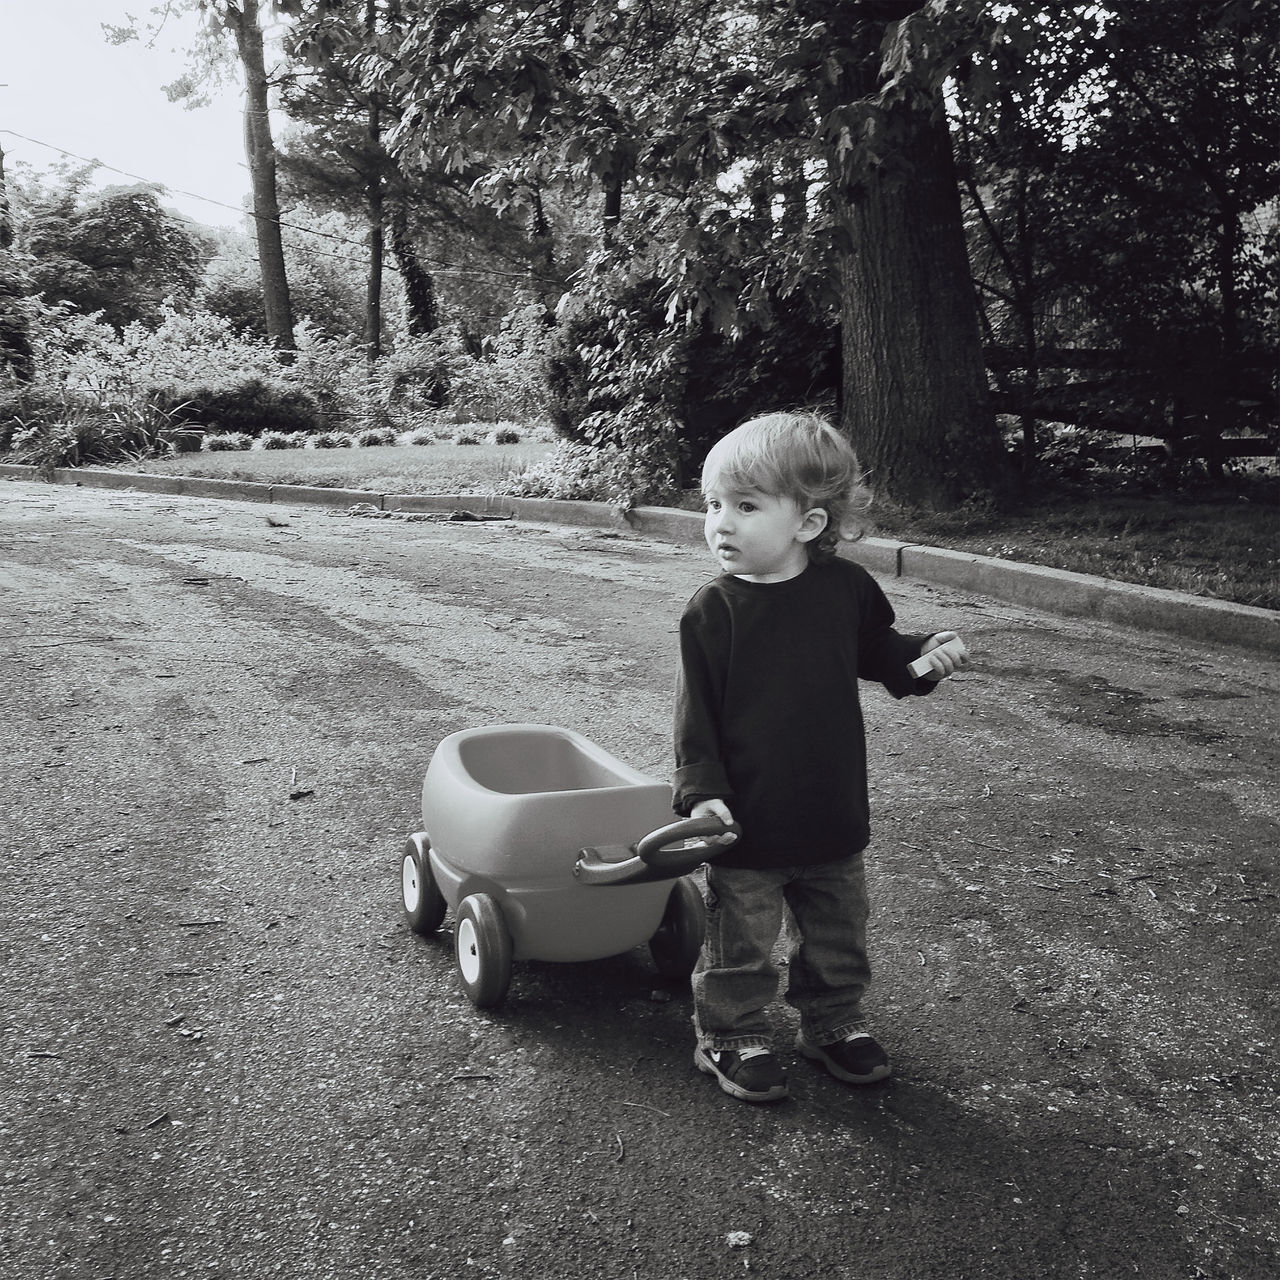 Cute Boy Pulling Go-Cart On Road